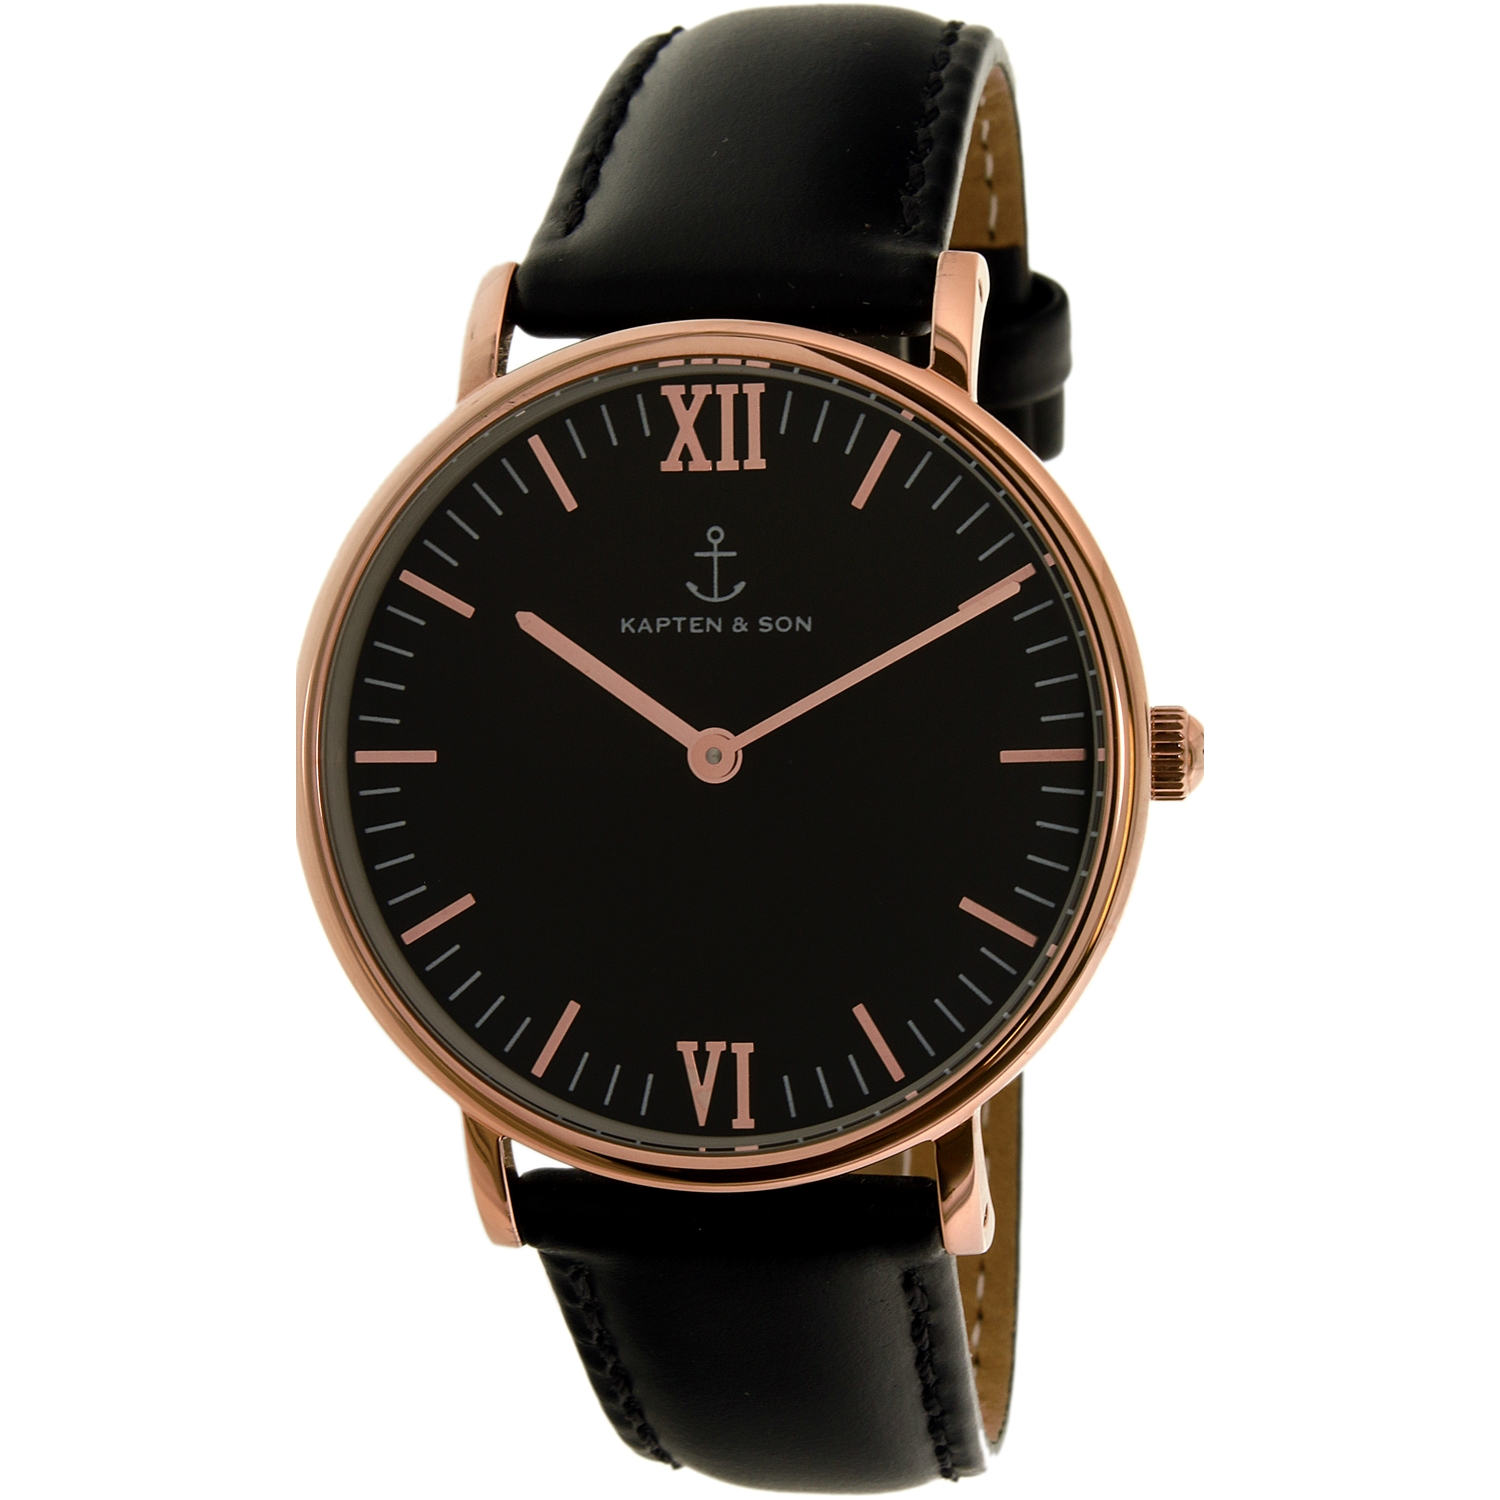 Kapten And Son Women's Campina CAMPINA-BLACK-ALL BLACK-ROSE GOLD-36MM Black Leather Quartz Fashion Watch